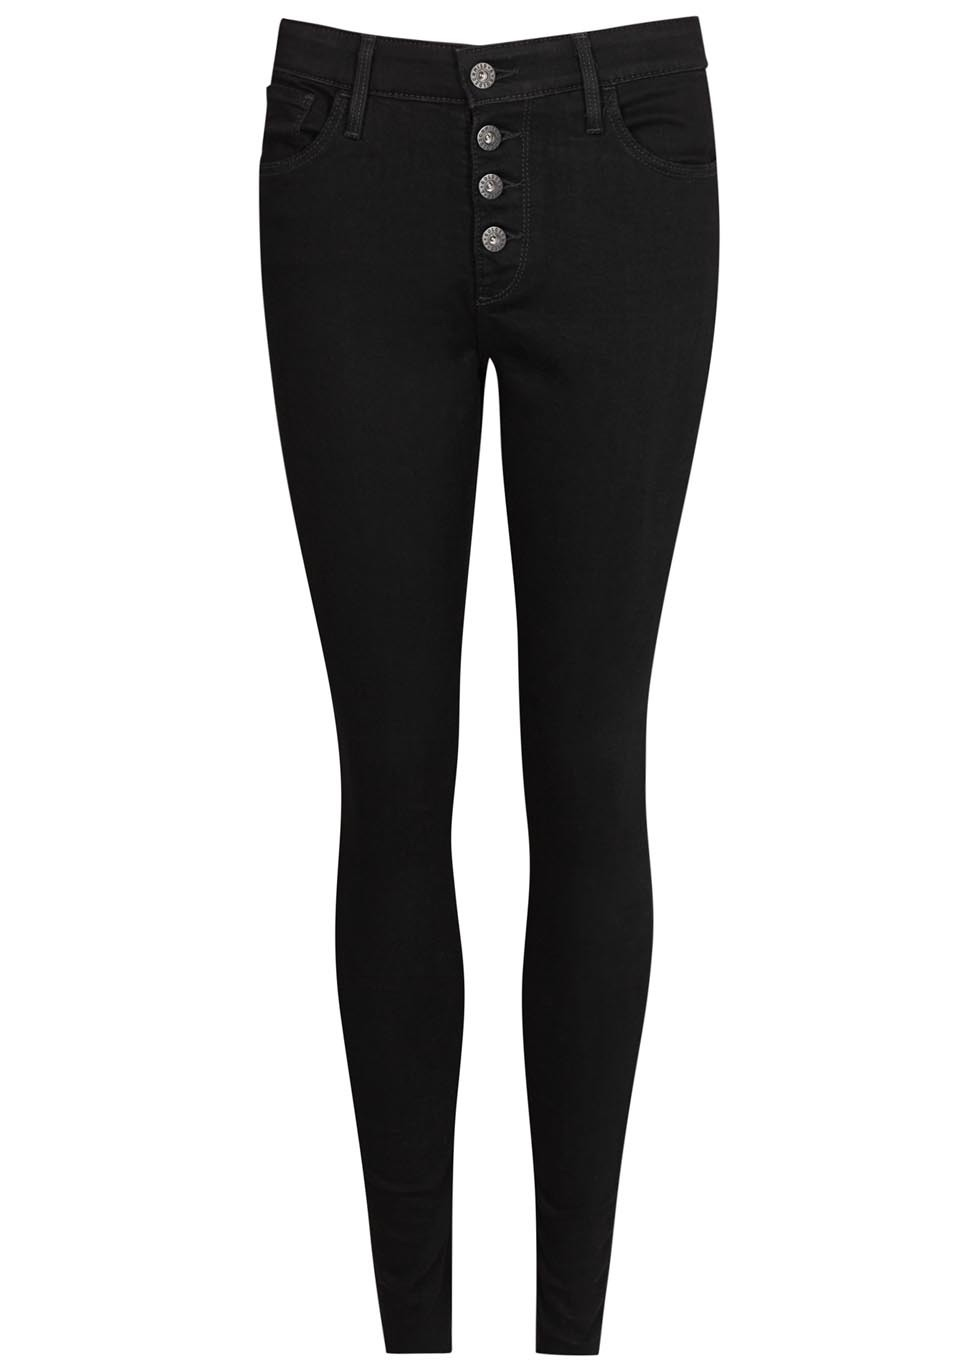 The Farrah Black Skinny Jeans - style: skinny leg; length: standard; pattern: plain; waist: high rise; predominant colour: black; occasions: casual; fibres: cotton - stretch; texture group: denim; pattern type: fabric; season: s/s 2016; wardrobe: basic